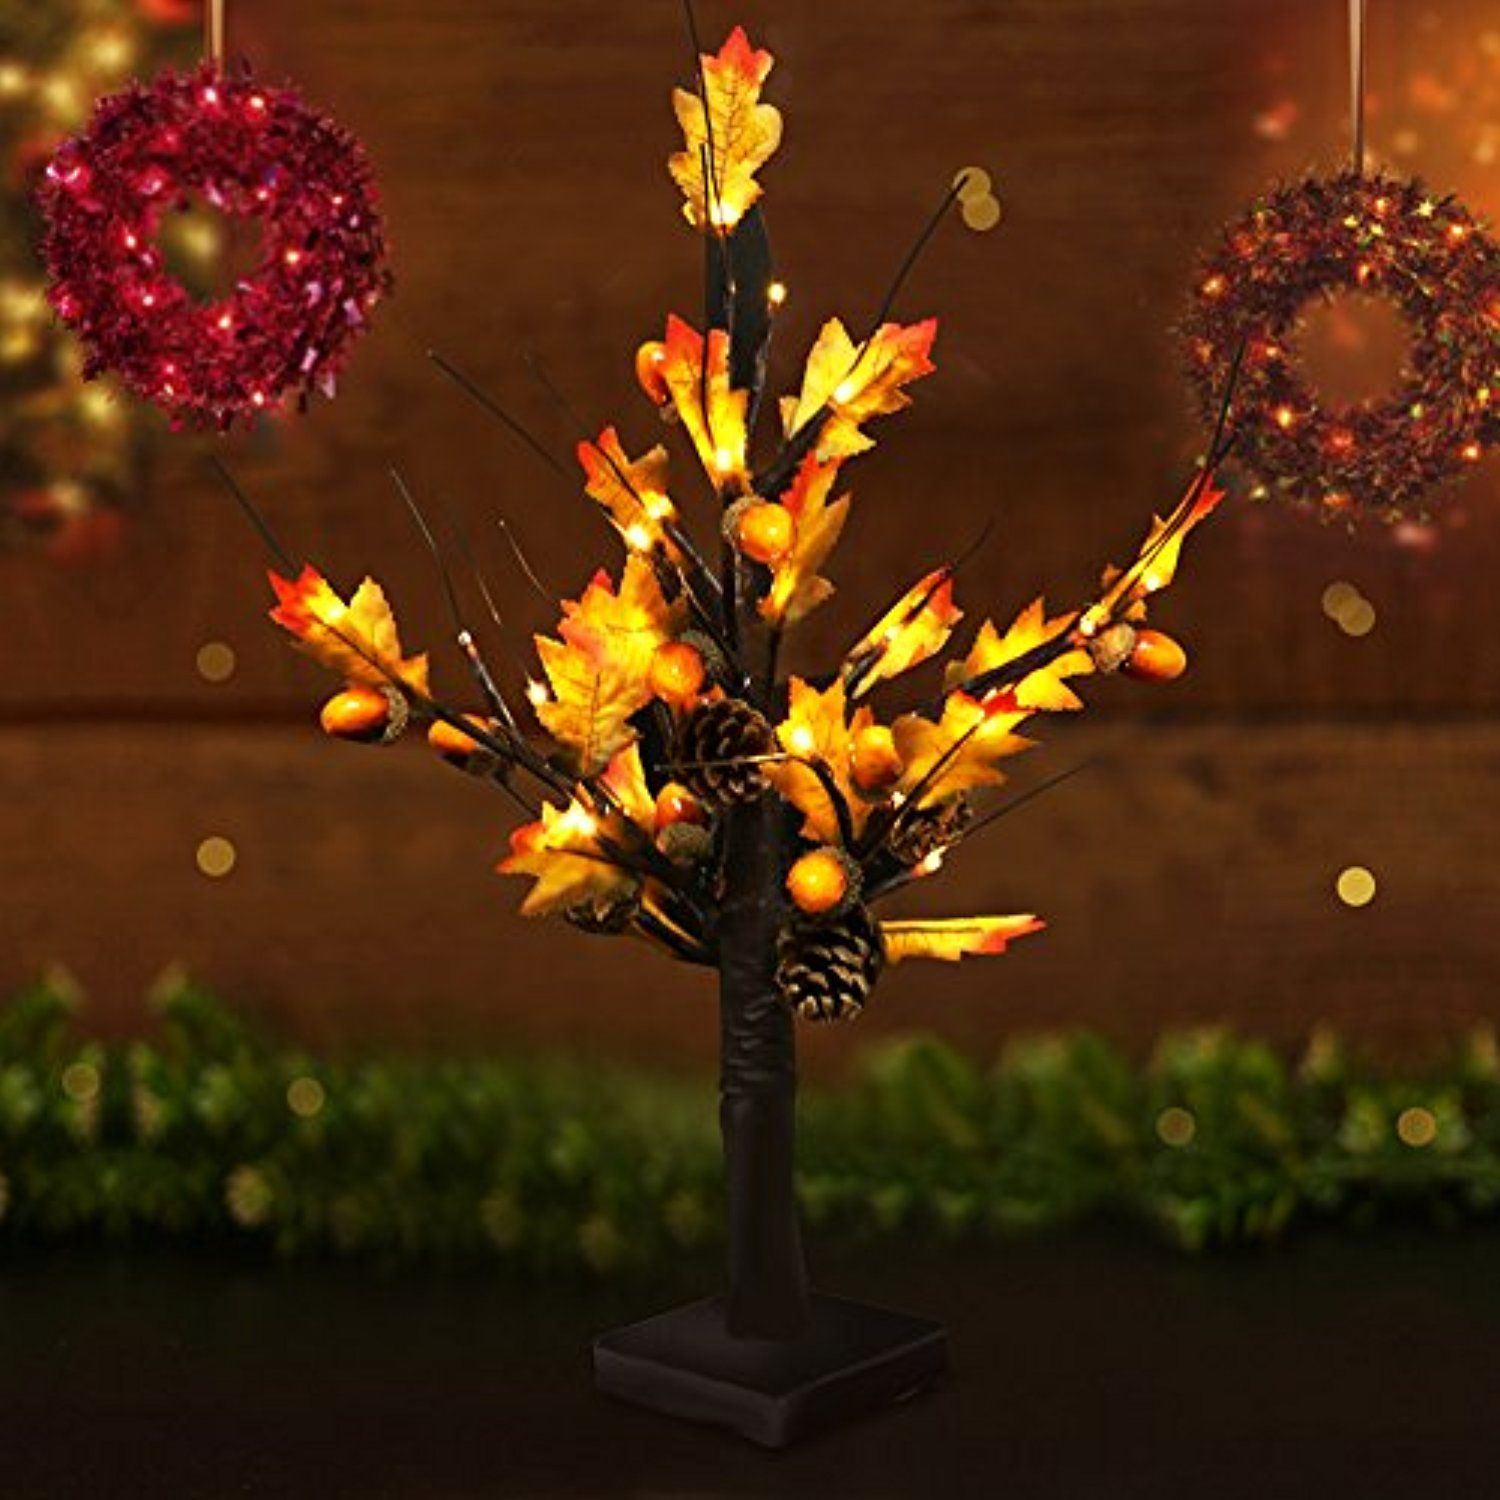 Bright Zeal 19 5 Maple Tree Lights Battery Operated Led Artificial Christmas Trees Wi Xmas Tree Lights Christmas Table Top Decorations Pine Cone Decorations